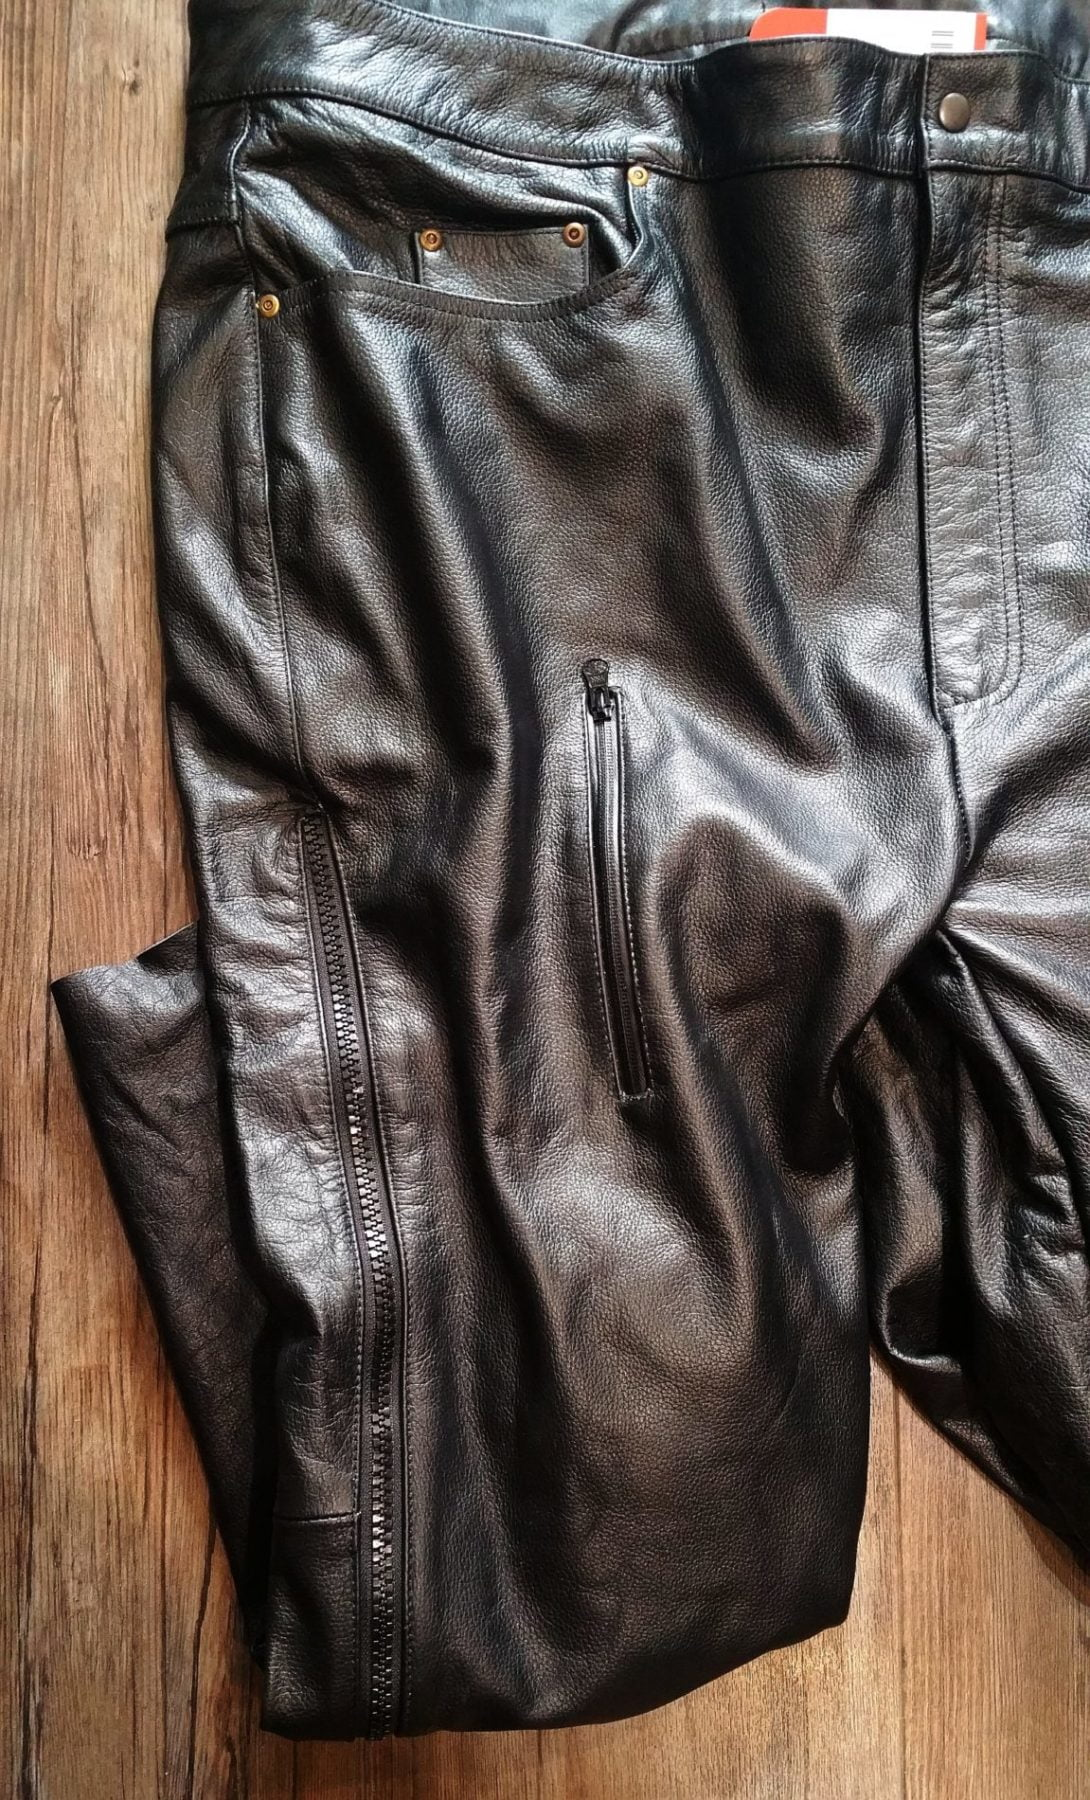 Plus-sized, short legs? Rejoice in these armored leather riding pants!